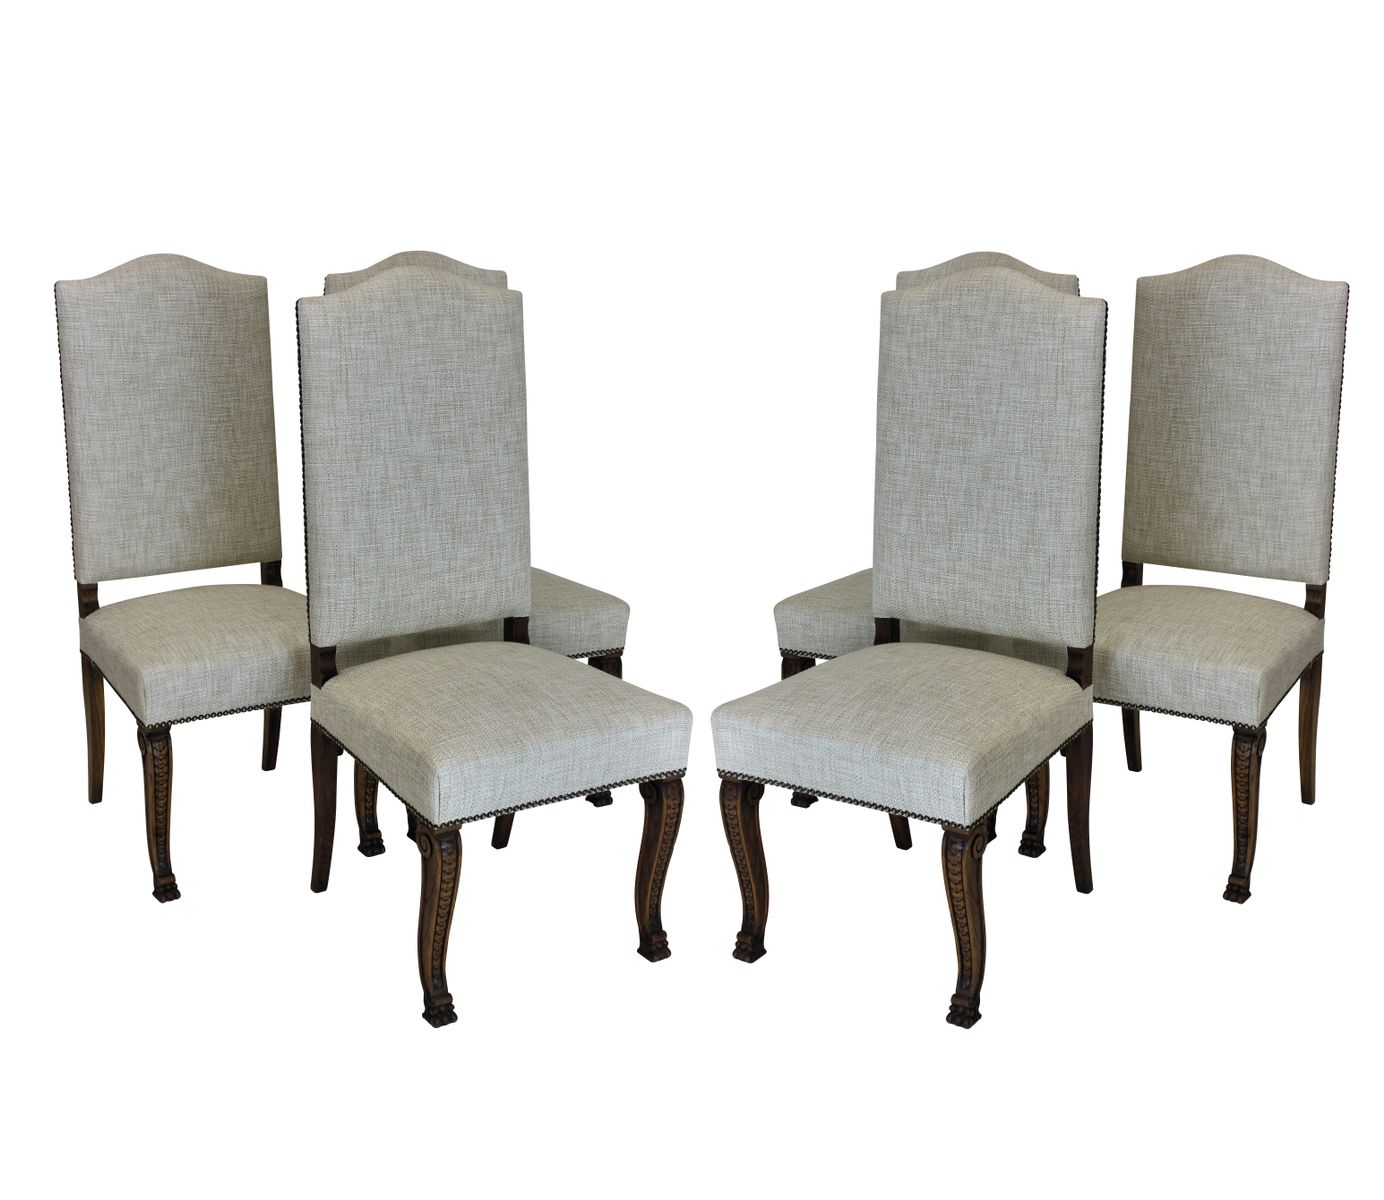 French high back dining chairs 1830s set of 6